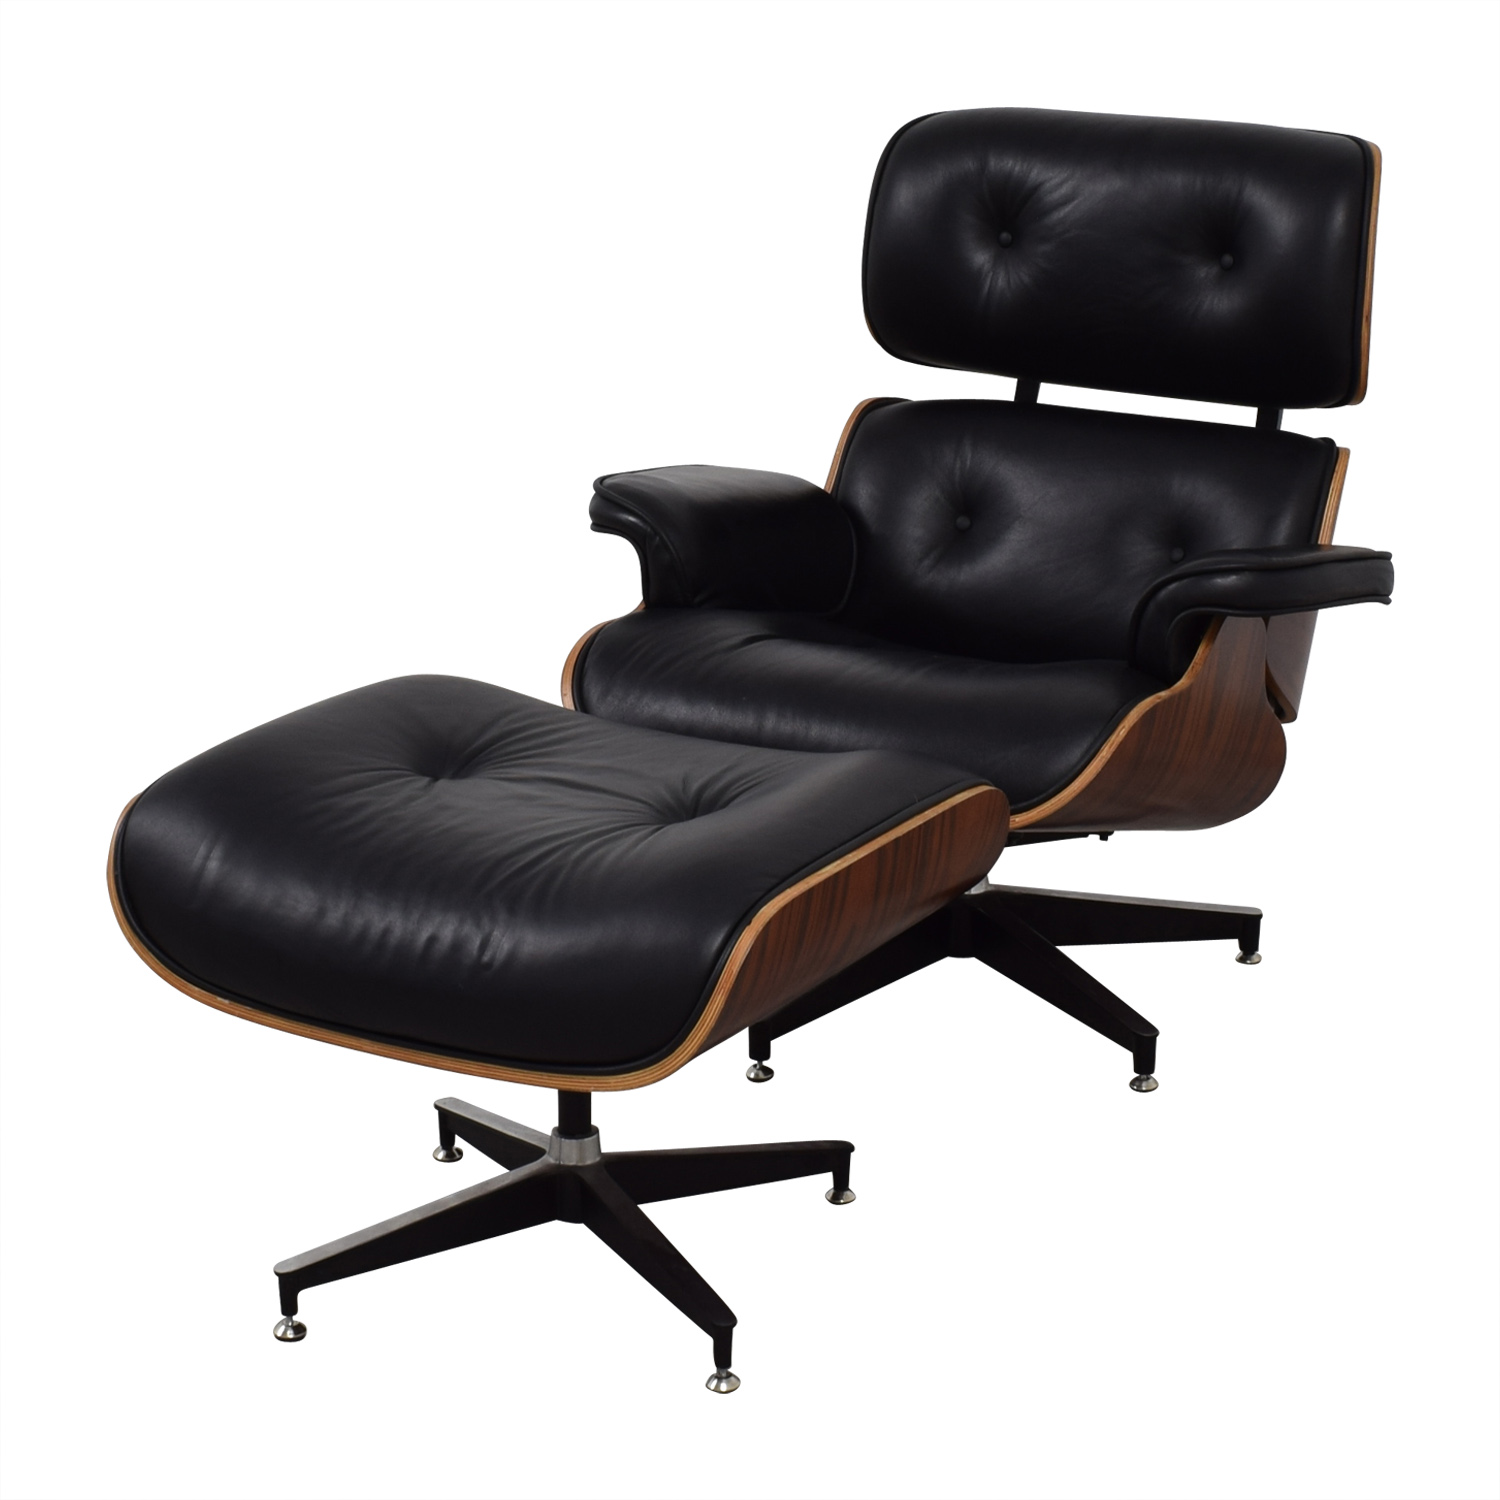 49% OFF - Manhattan Home Design Manhattan Home Design Eames Replica Chair  and Ottoman / Chairs